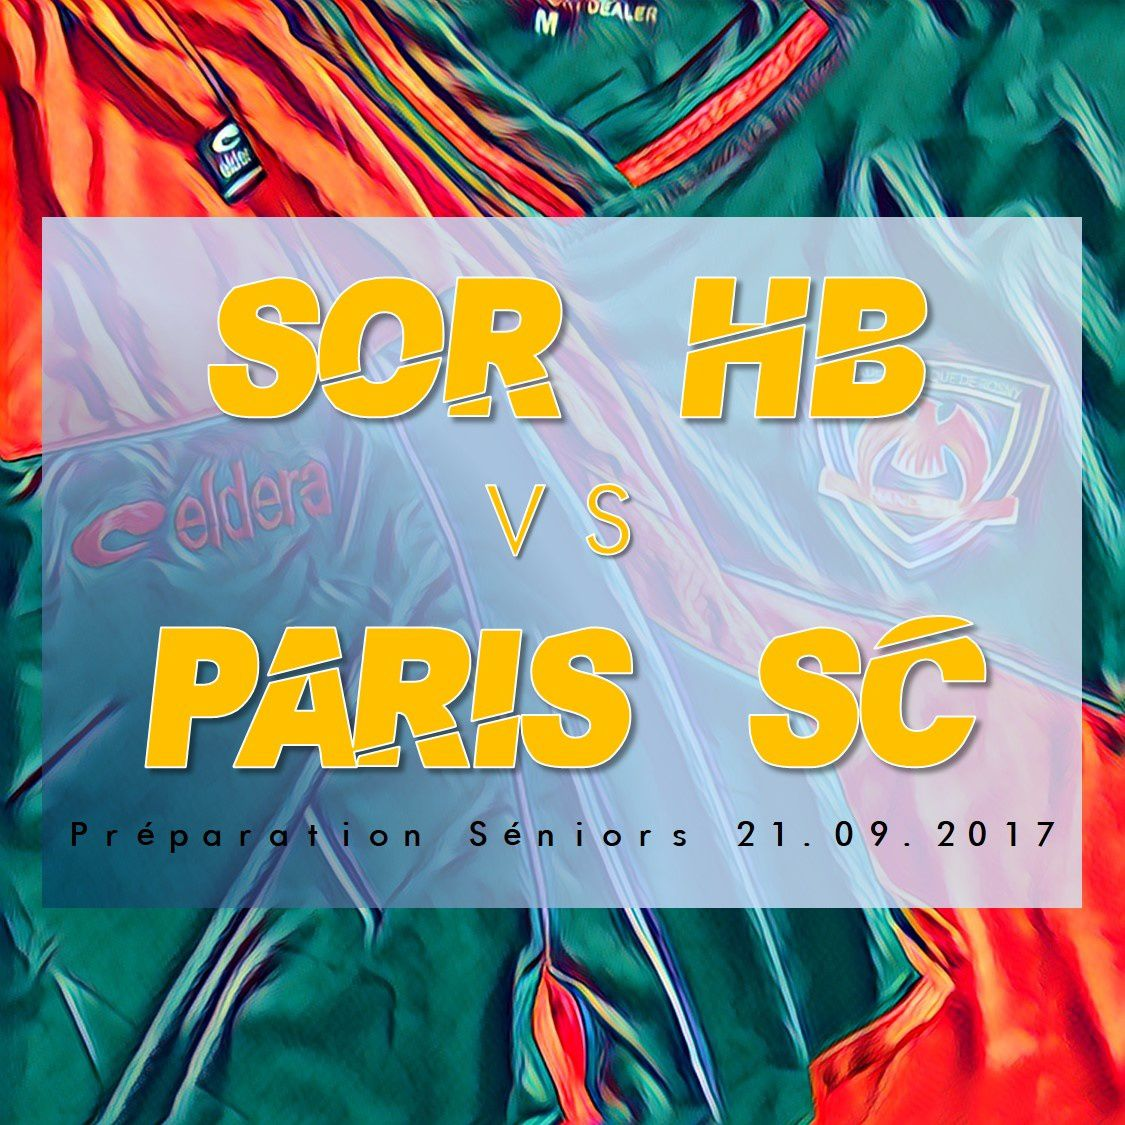 SOR HB vs PARIS SPORT CLUB (Prépa. Séniors 21.09.2017)